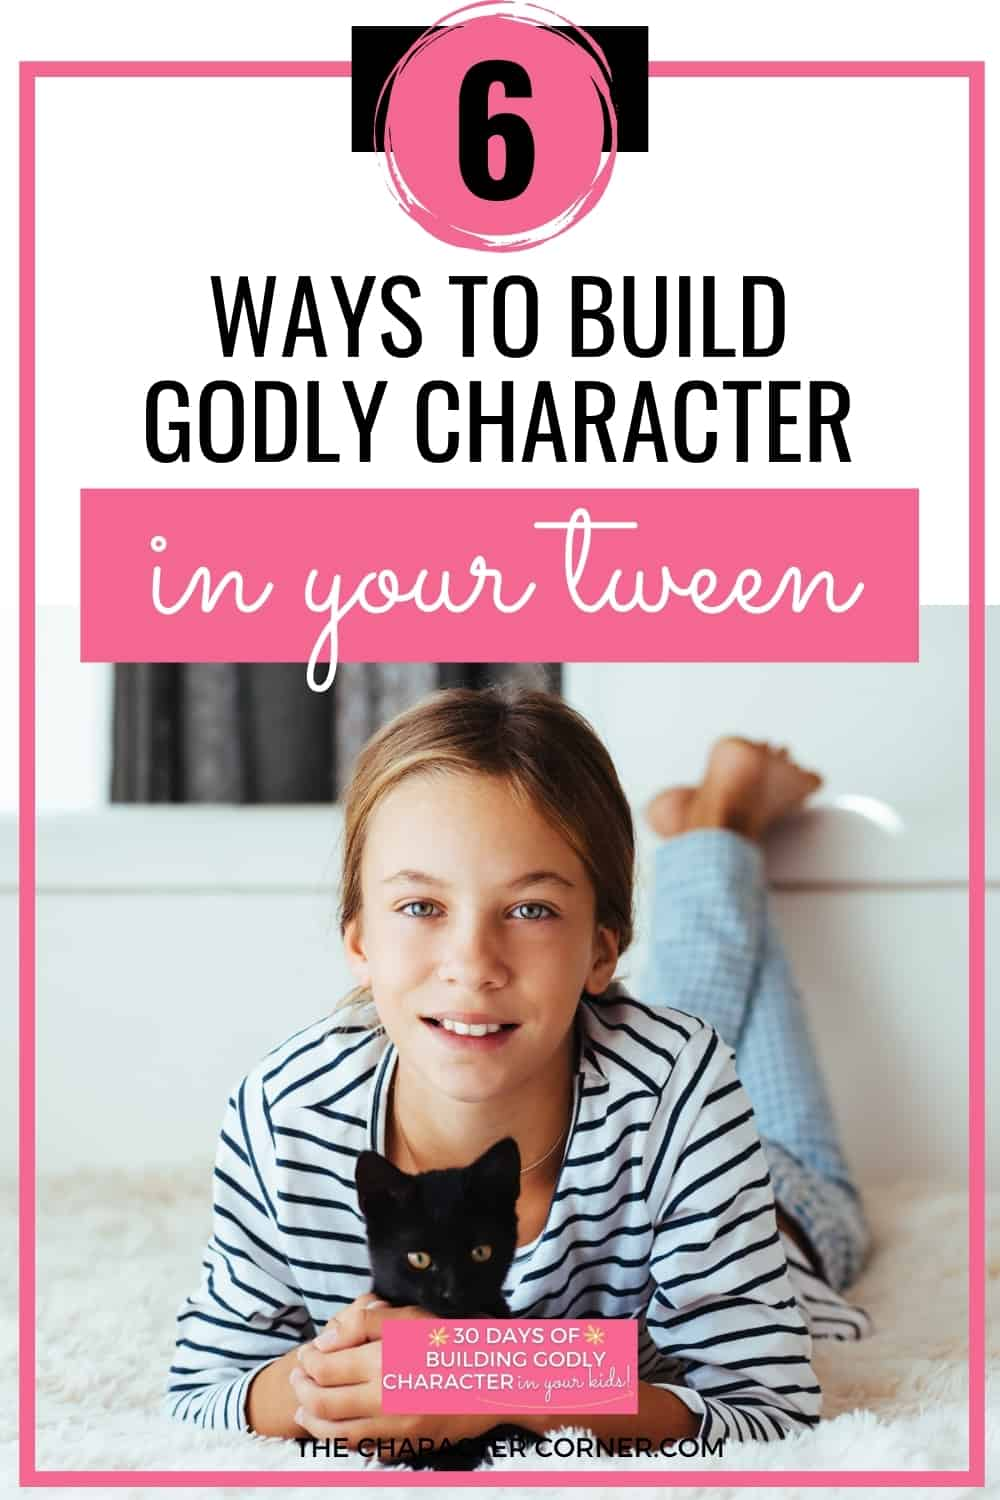 Happy Tween Girl laying on the floor with her cat. Text on image reads:6 Ways to Build Godly Character in Your Tween